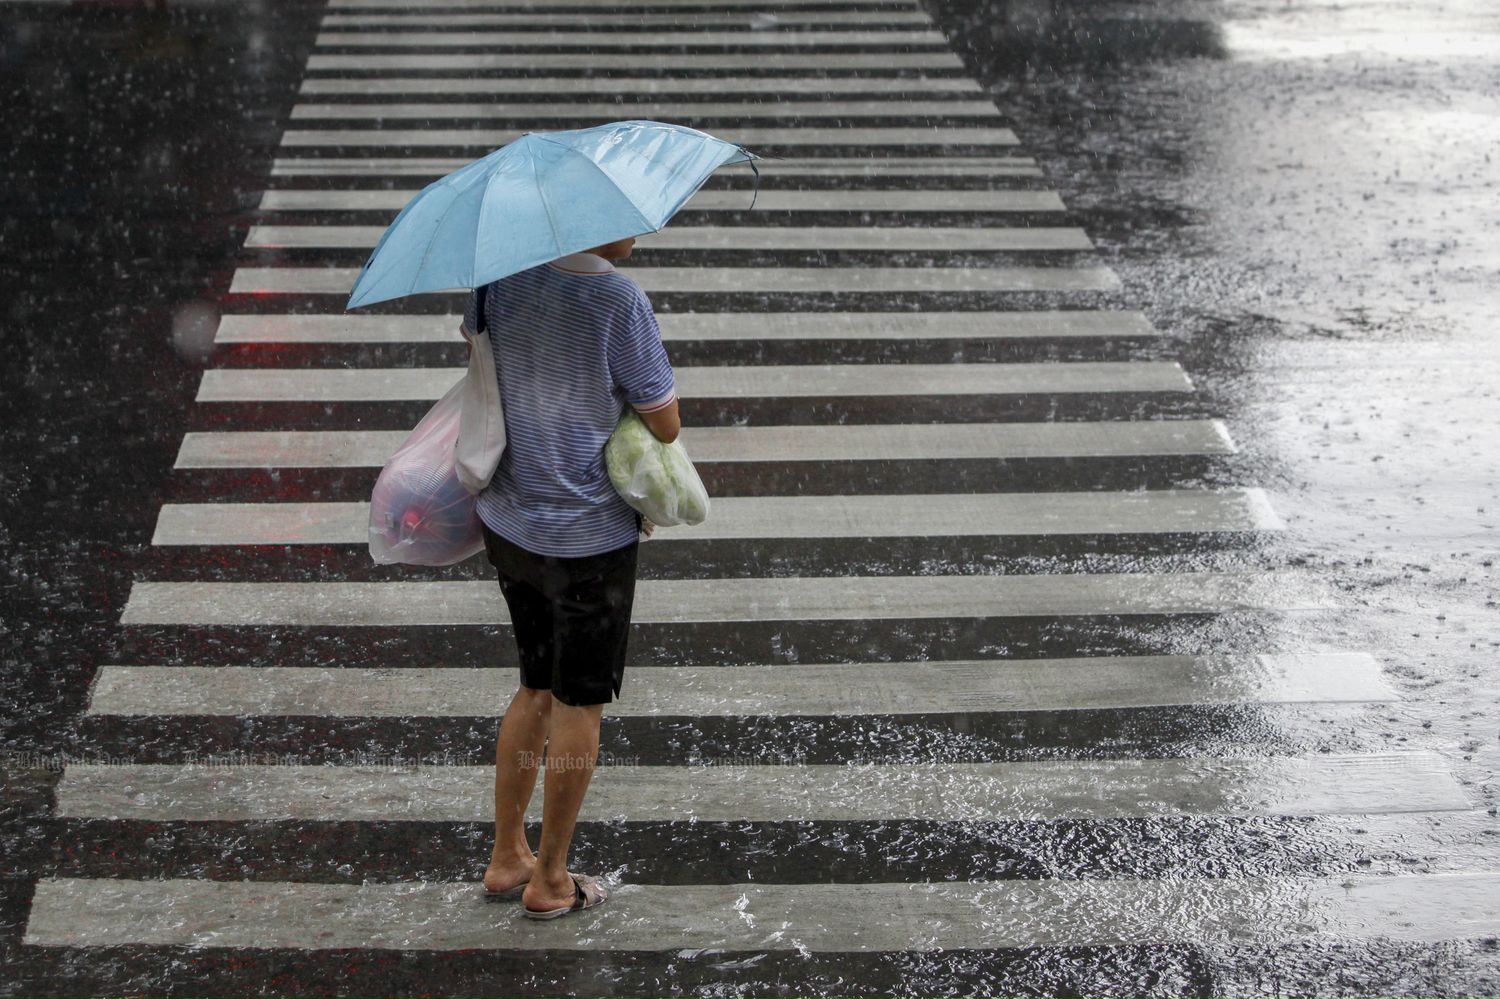 Rain, Cold Weather Forecast For Next Week